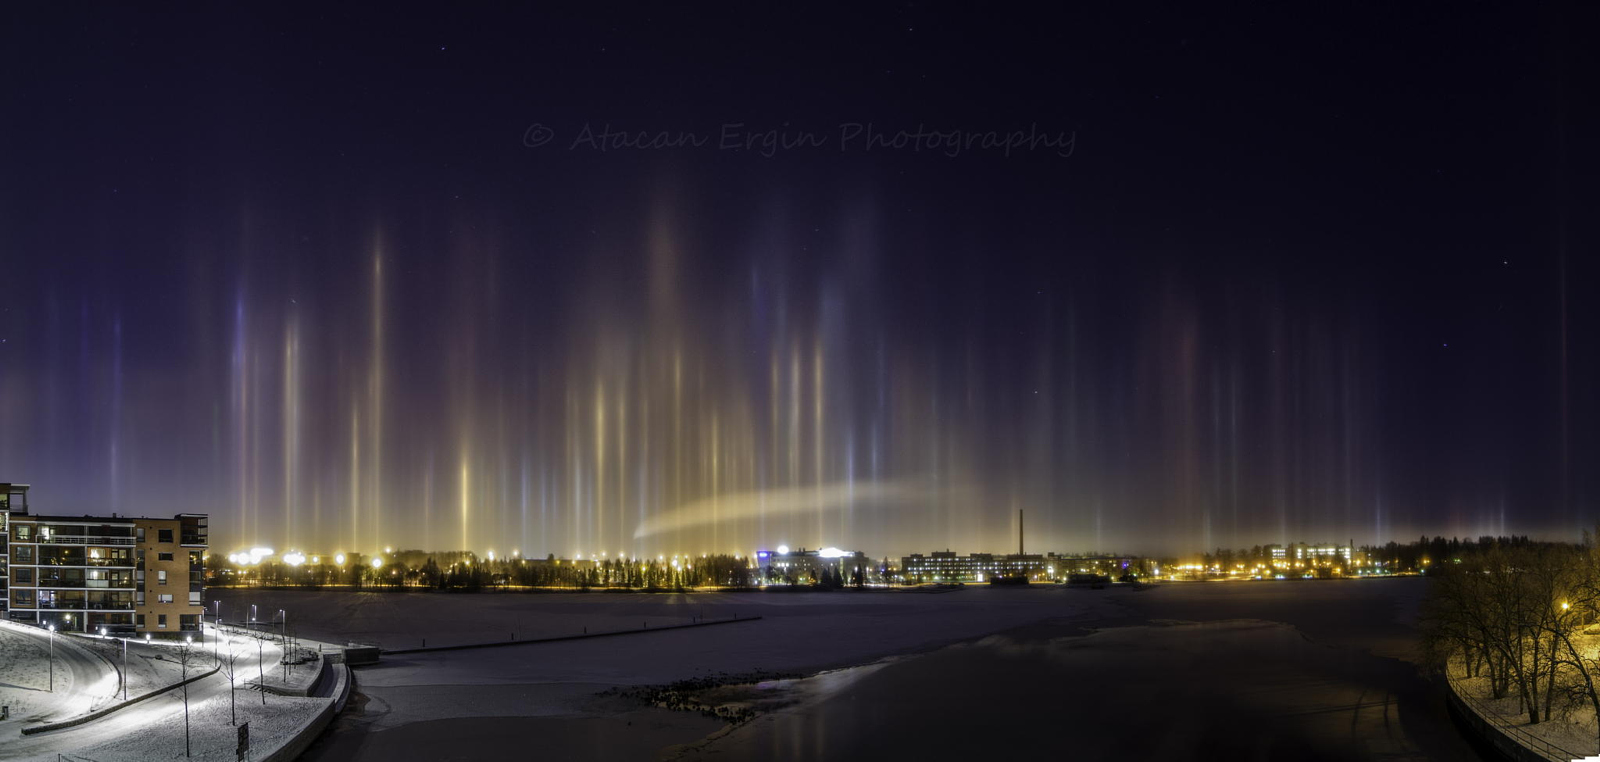 Beam Me Up Scotty! 15 Photos of the Light Pillar Phenomenon